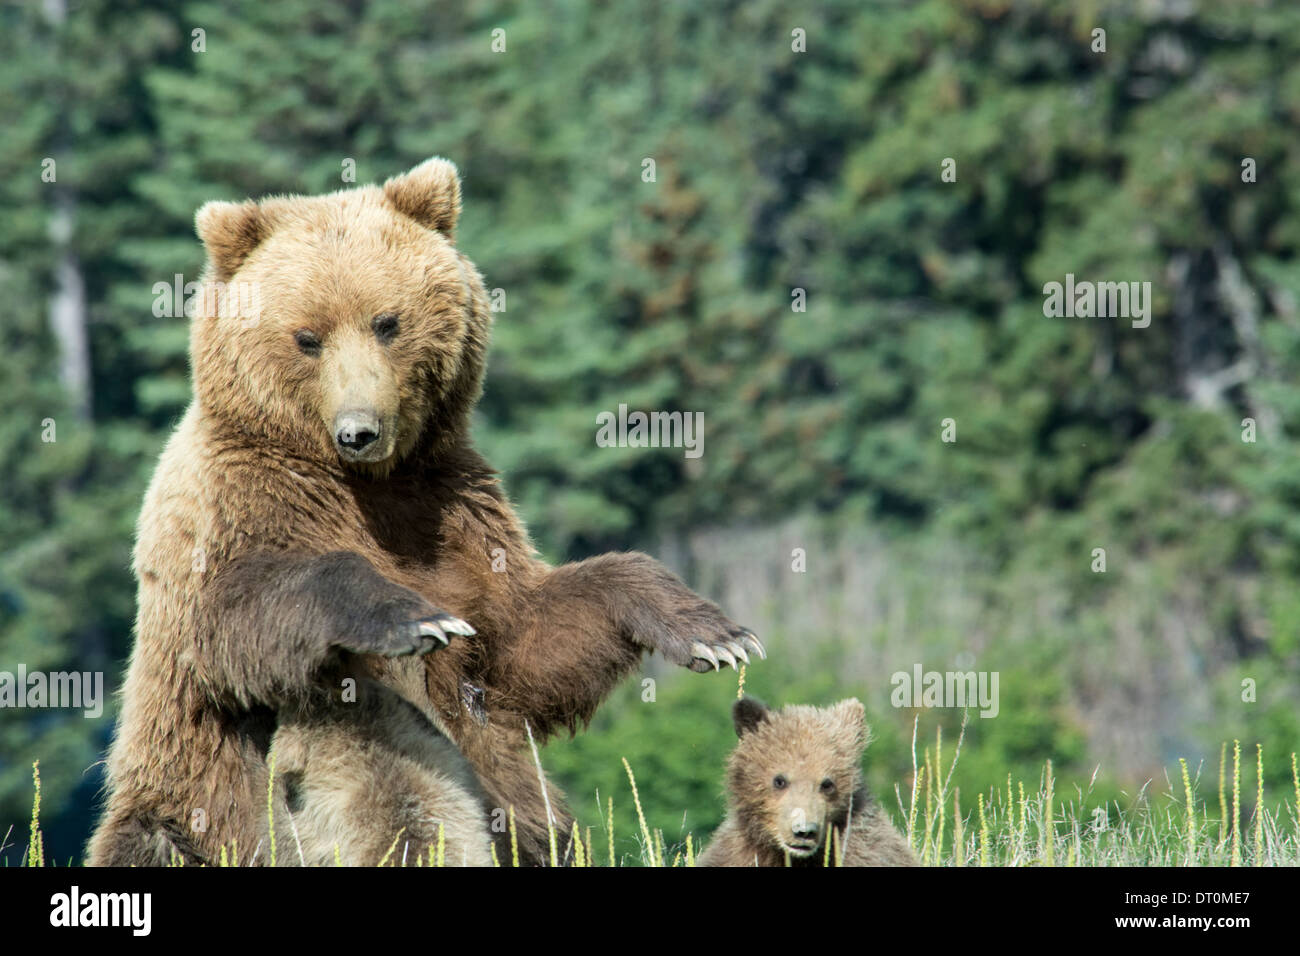 Grizzly Bear Sow, Ursus arctos, with two Spring Cubs, one nursing as she stands, Lake Clark National Park, Alaska, USA - Stock Image